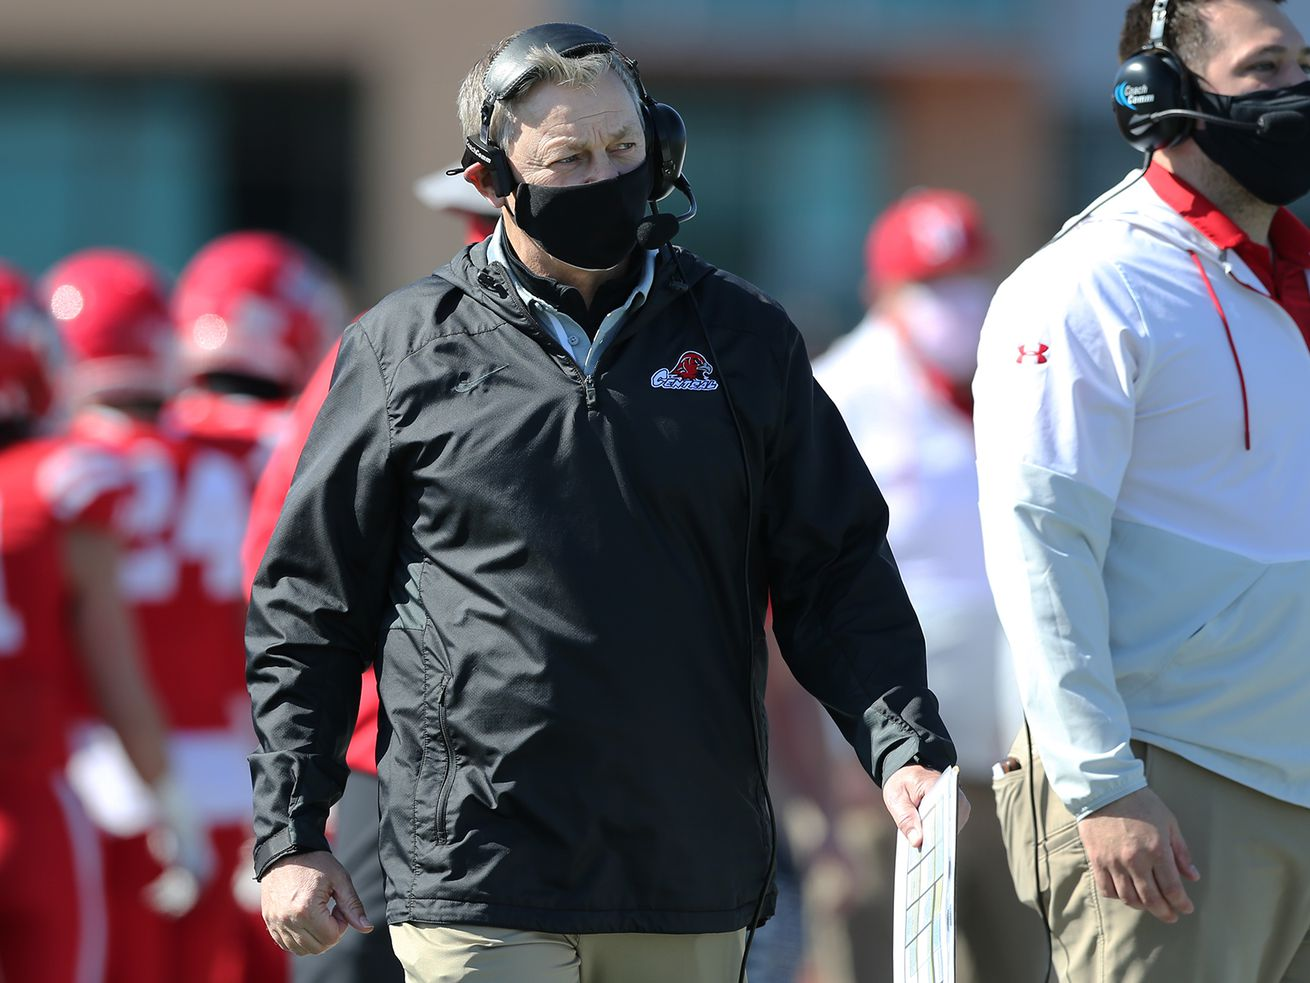 Naperville Central's head coach Mike Stine walks the sideline during his 100th win.